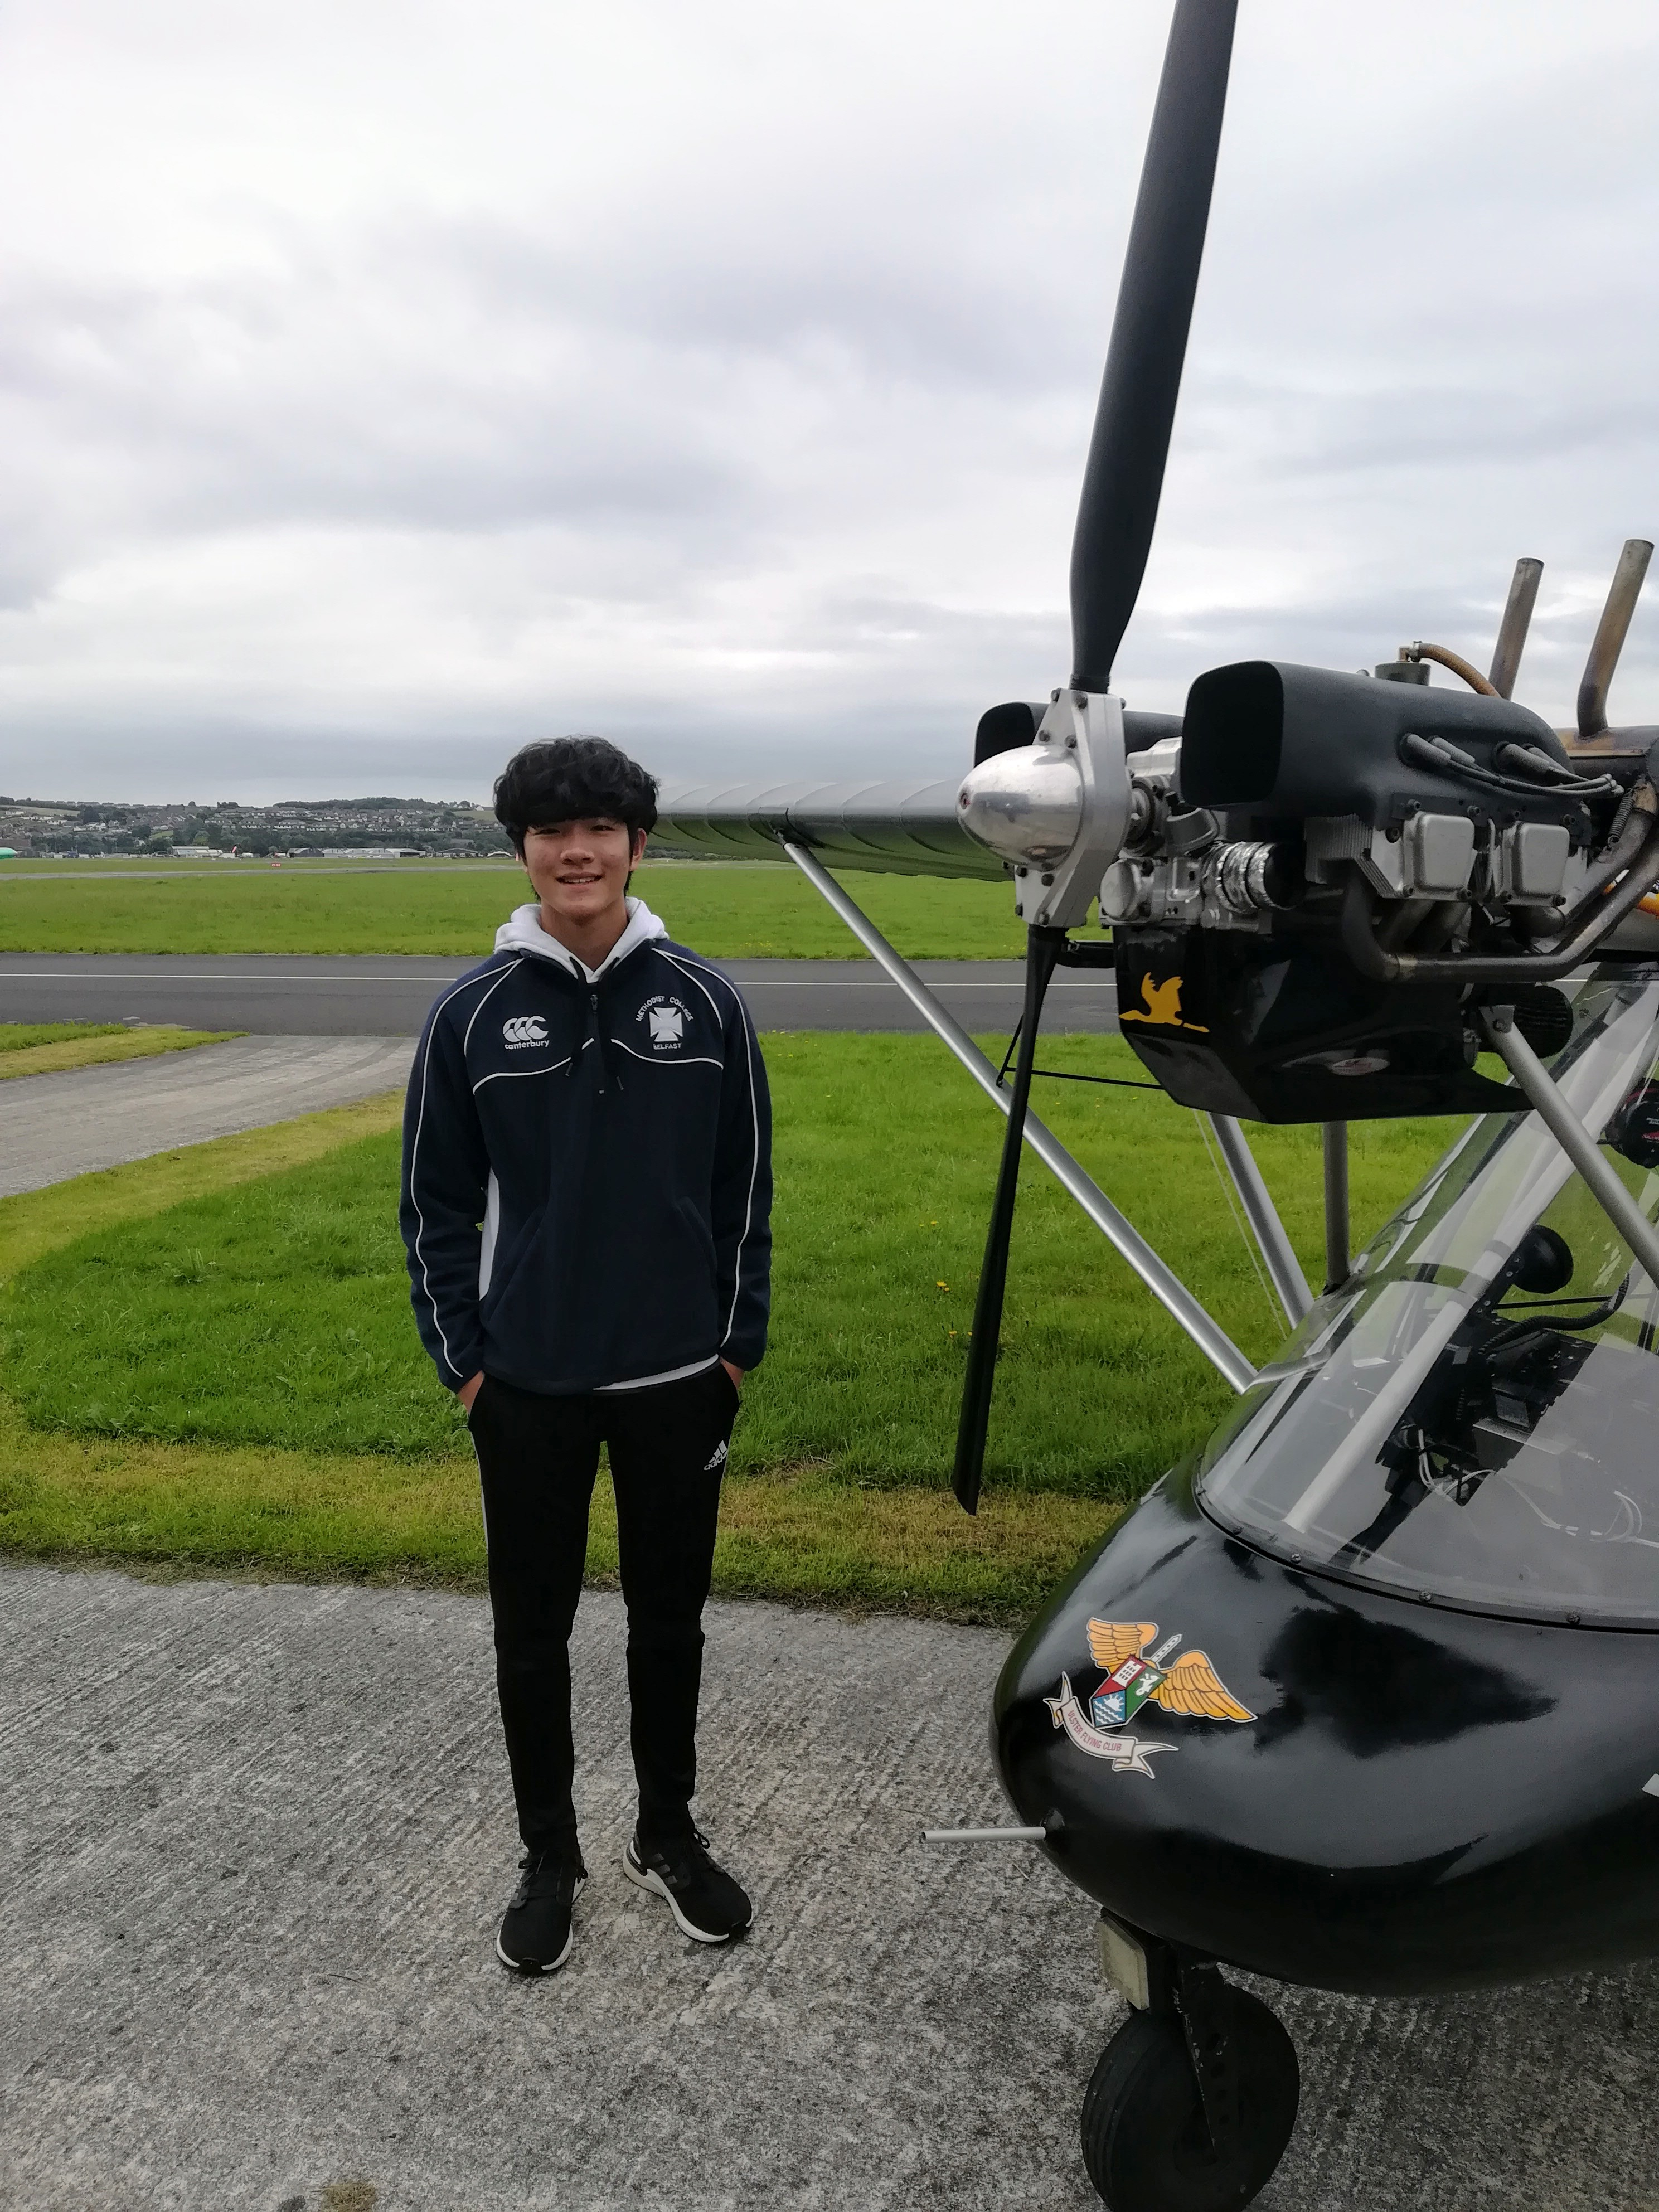 17 year old The Anh Loughran gains his Pilot's Licence